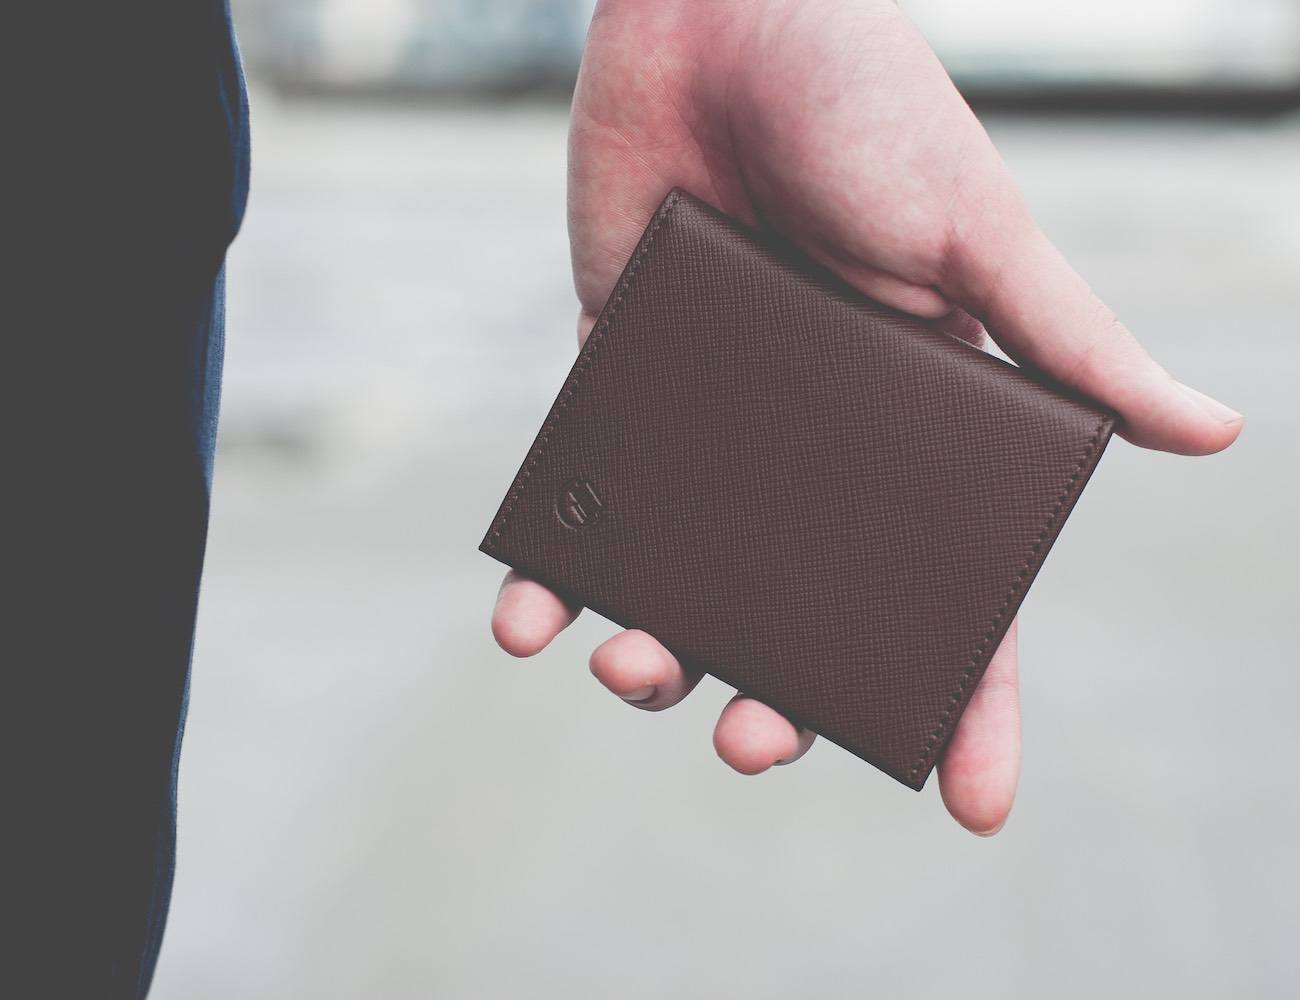 DFY – RFID Minimalist Wallets With No Ridiculous Mark Ups